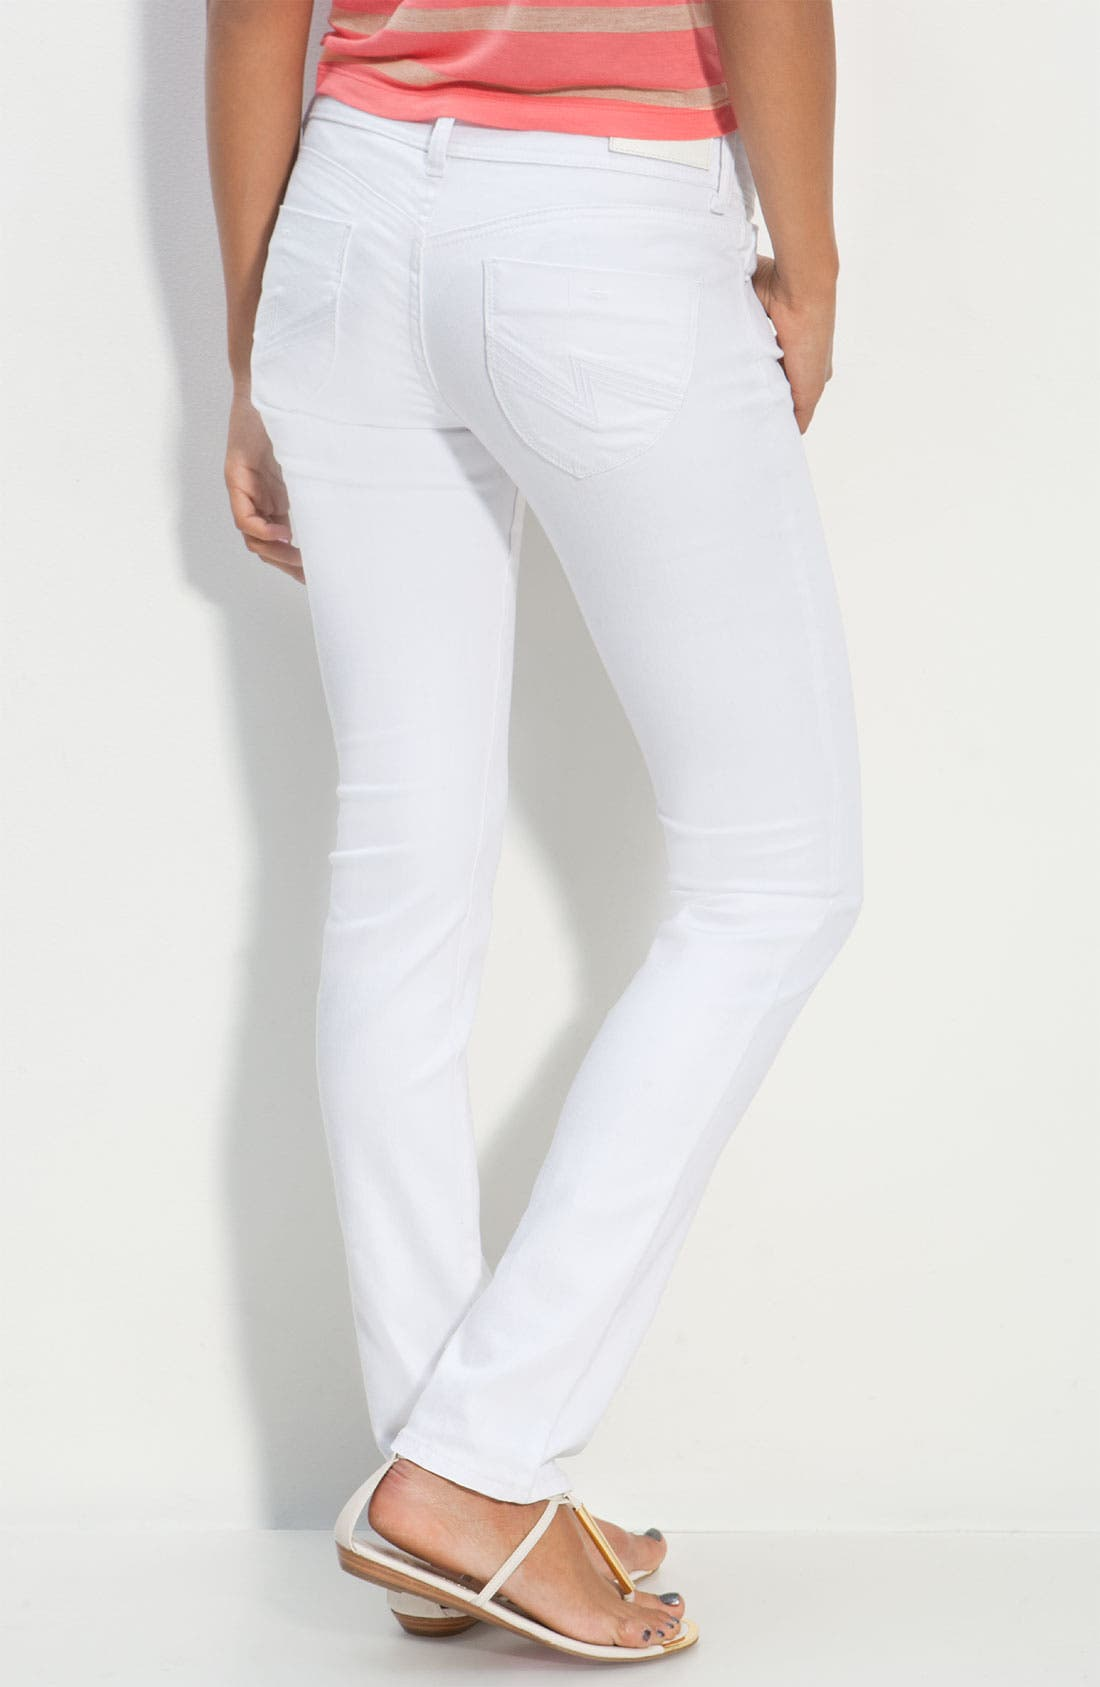 Main Image - S.O.N.G. Skinny Leg Jeans (Crystal White Wash) (Juniors)